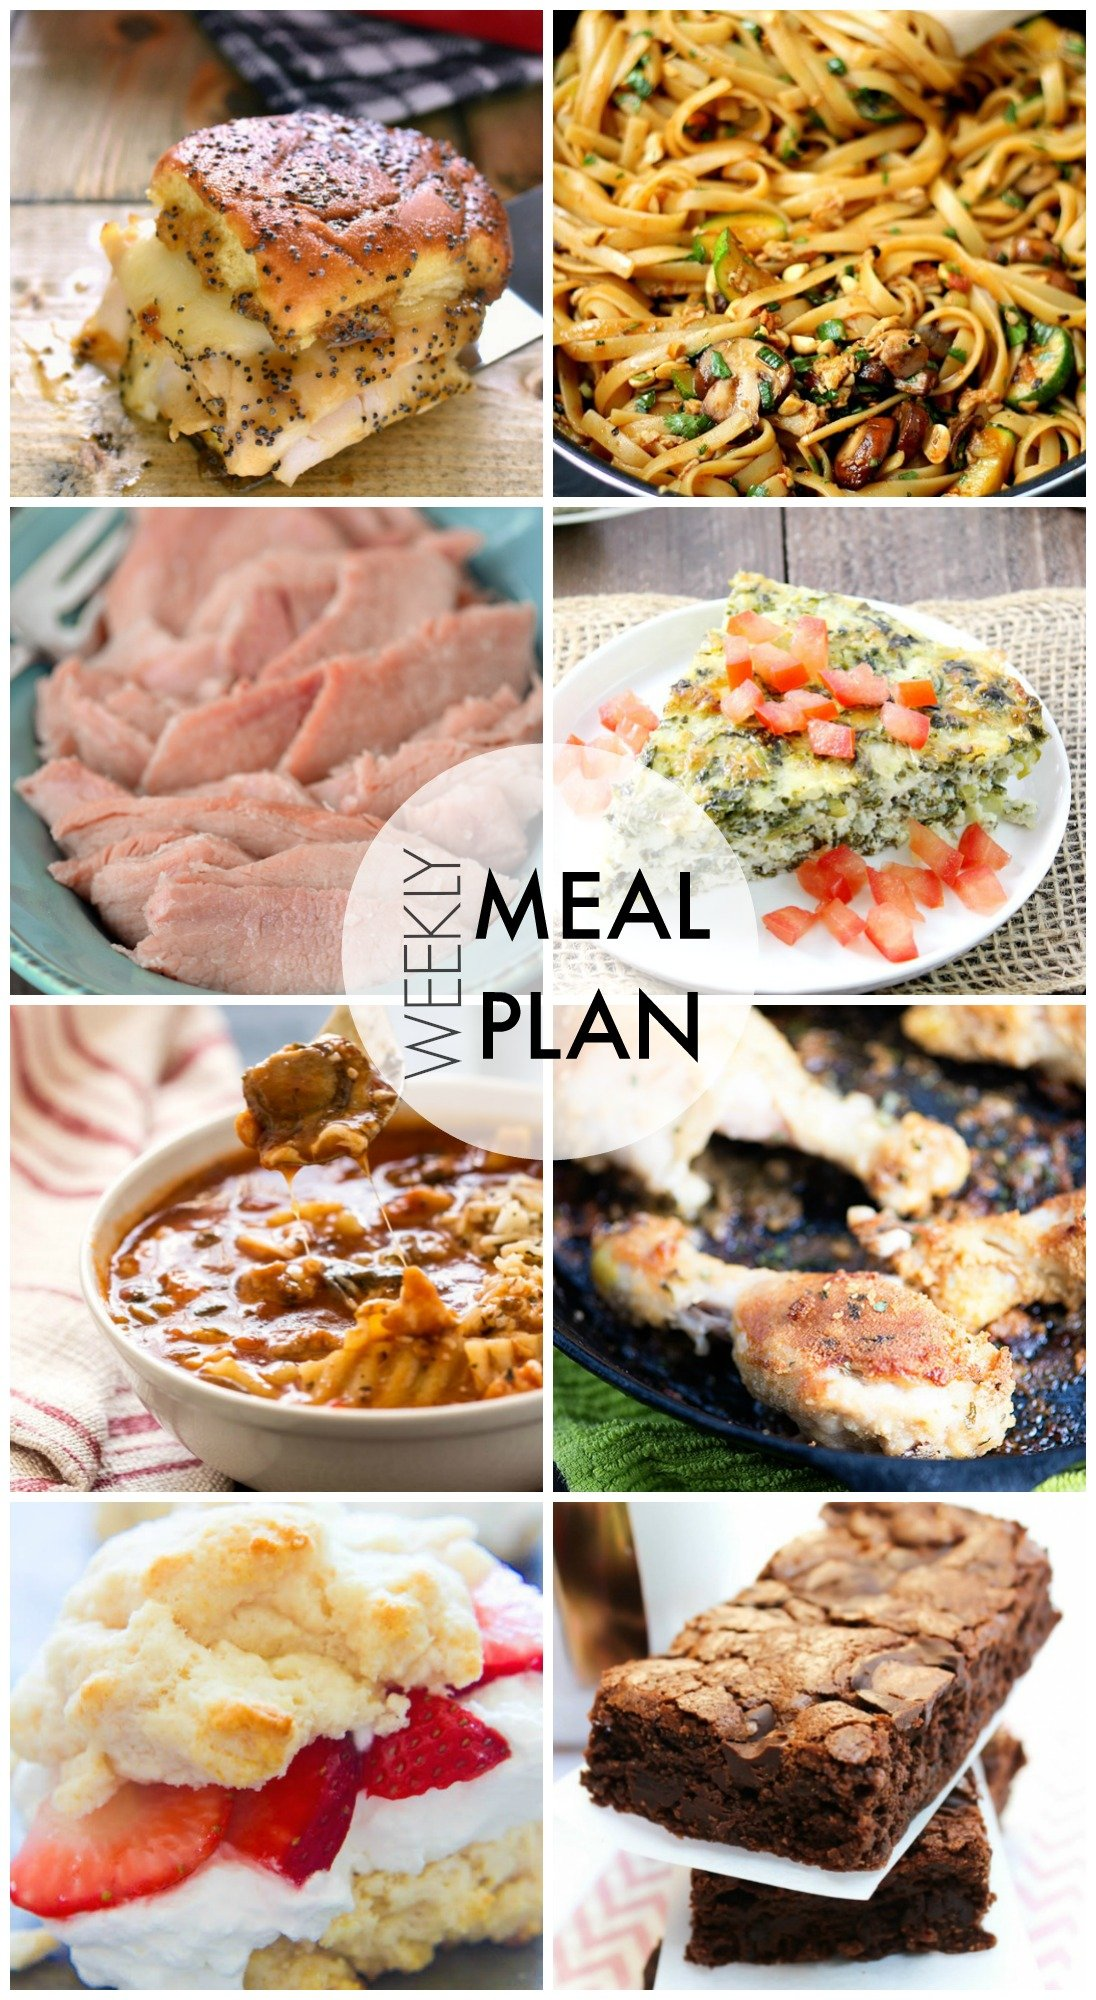 Easy Meal Plan - dinner recipes and dessert, too! This makes meal planning for the week a cinch!